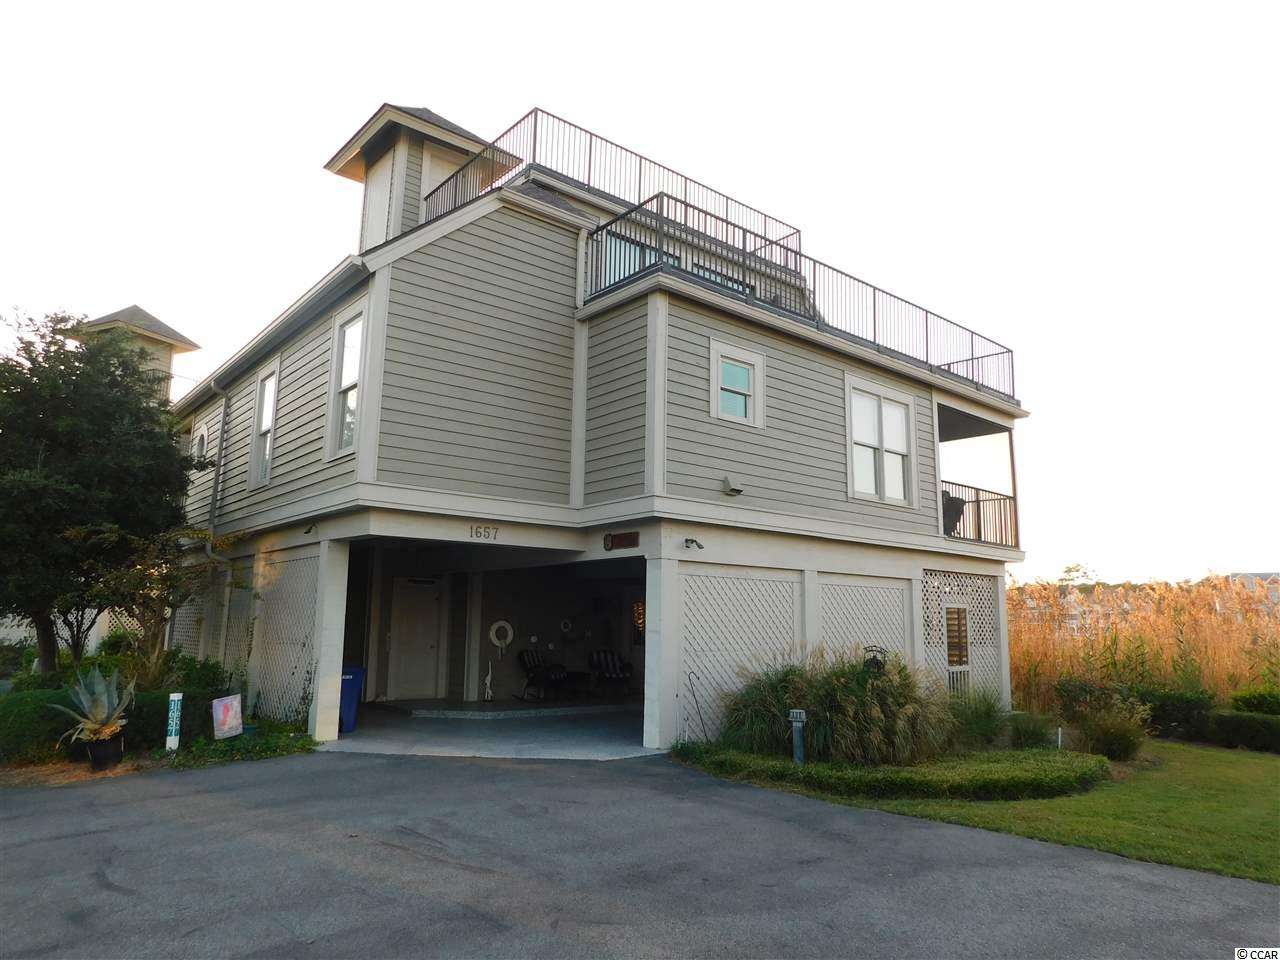 1657 Harbor Dr., North Myrtle Beach, South Carolina